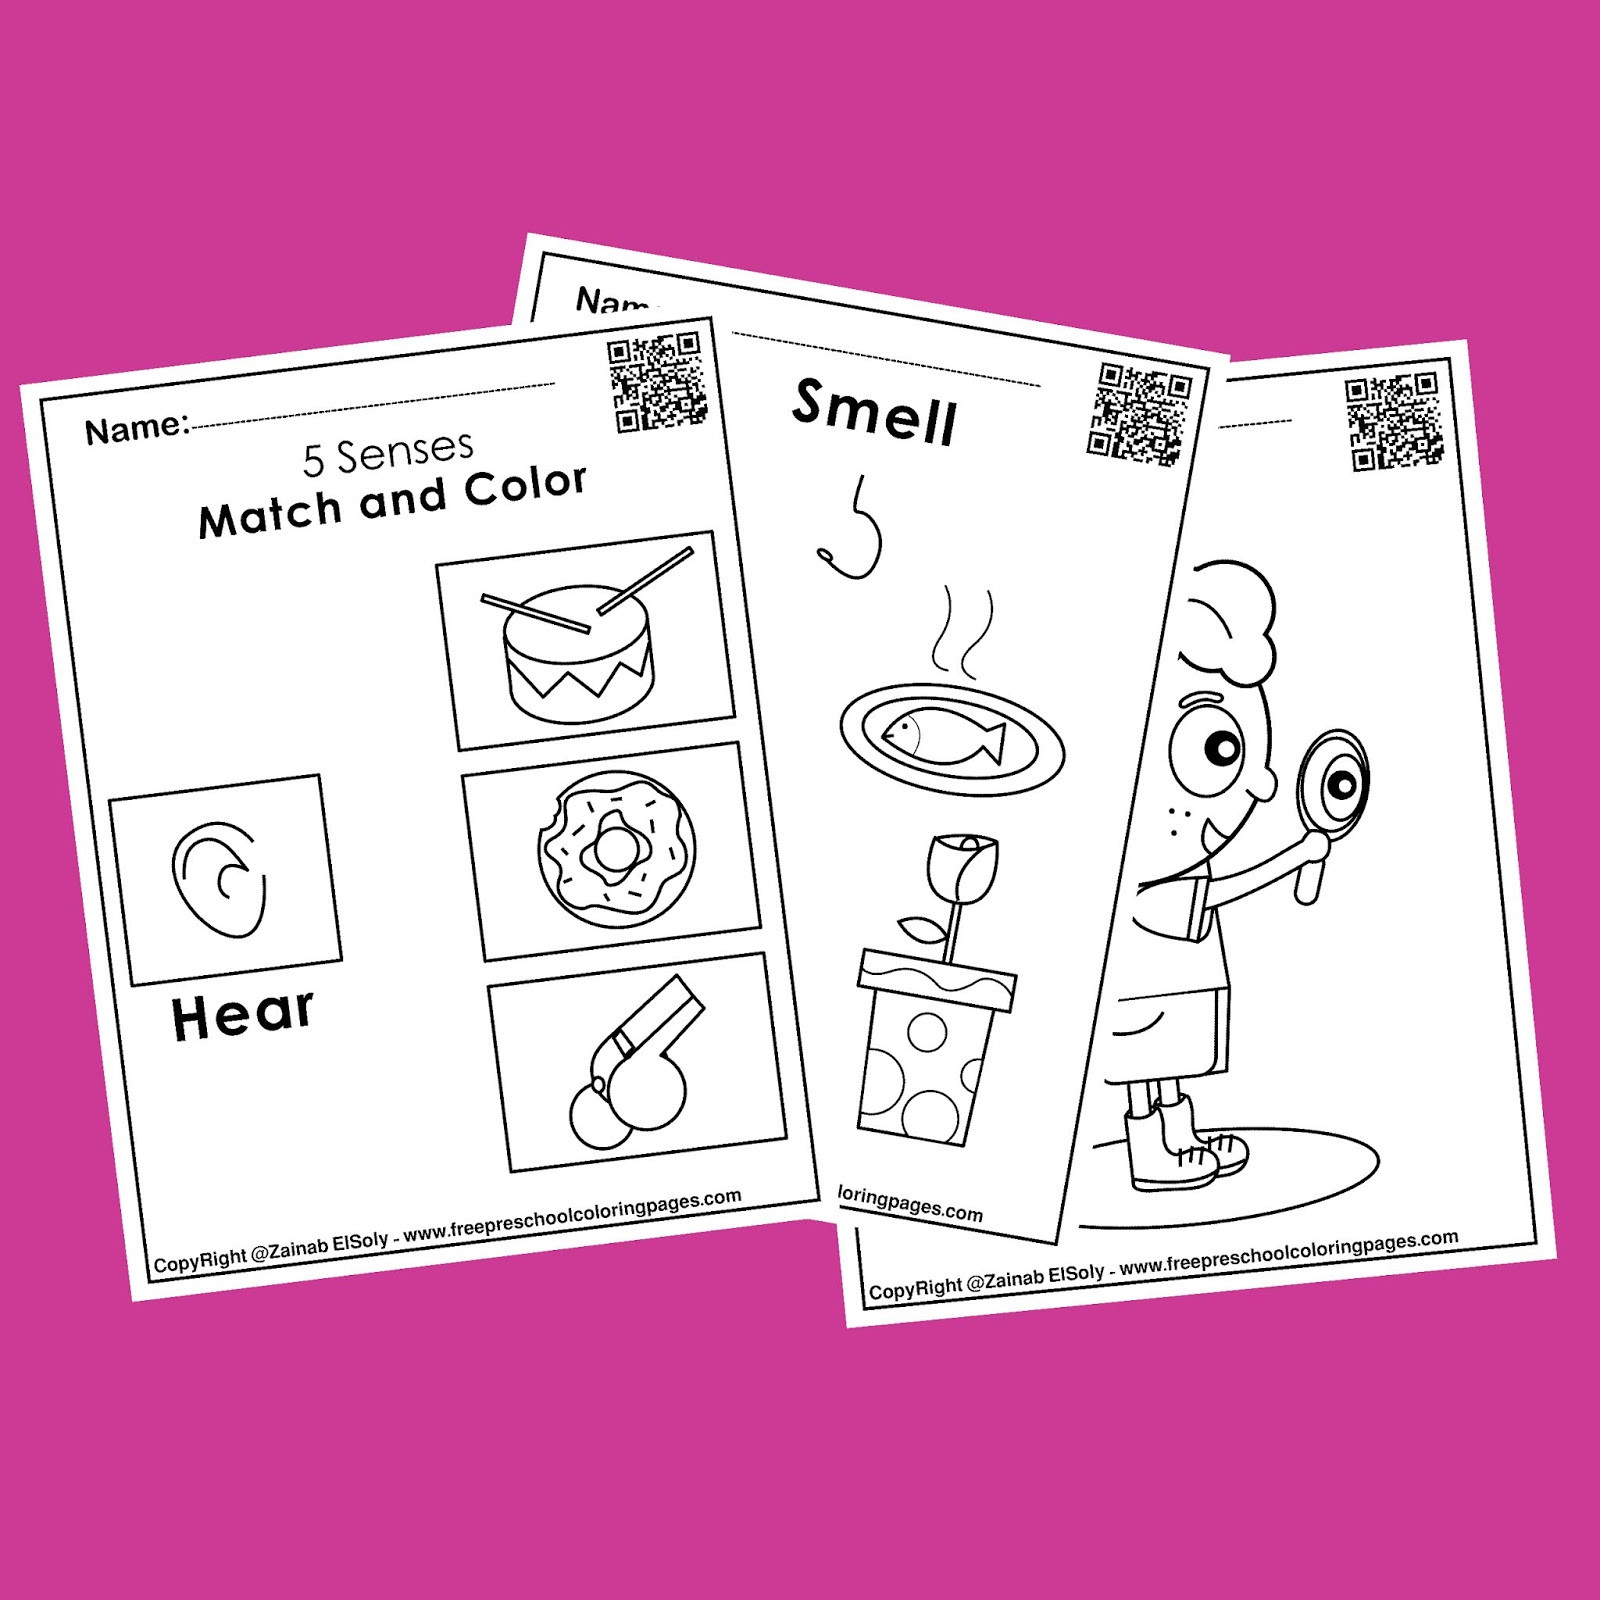 Free Printable Five Senses Worksheets 5 Senses Free Worksheets Activities for Kids